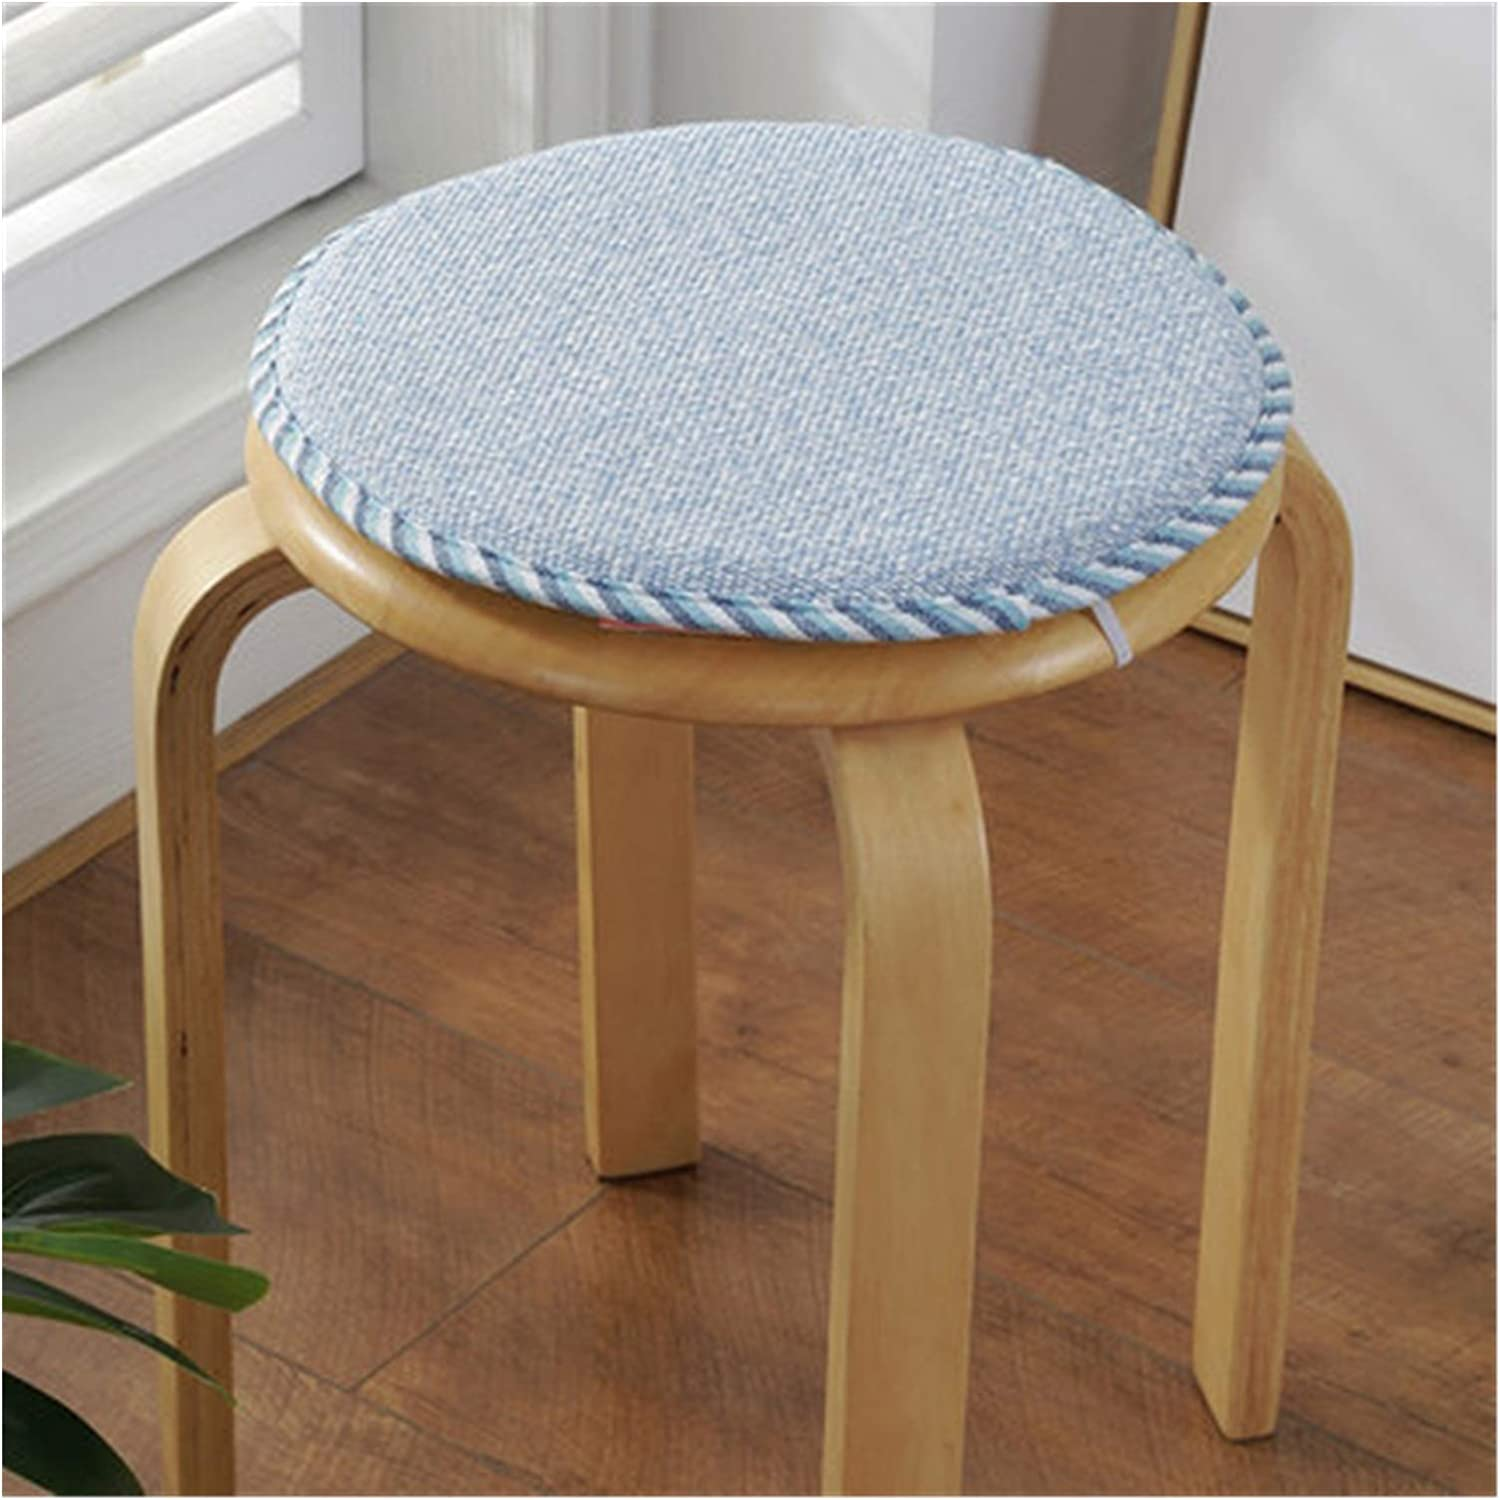 Raleigh Mall ZCPCS Winter Round Chair Cushion Soft Foam Seat Super Ho Credence